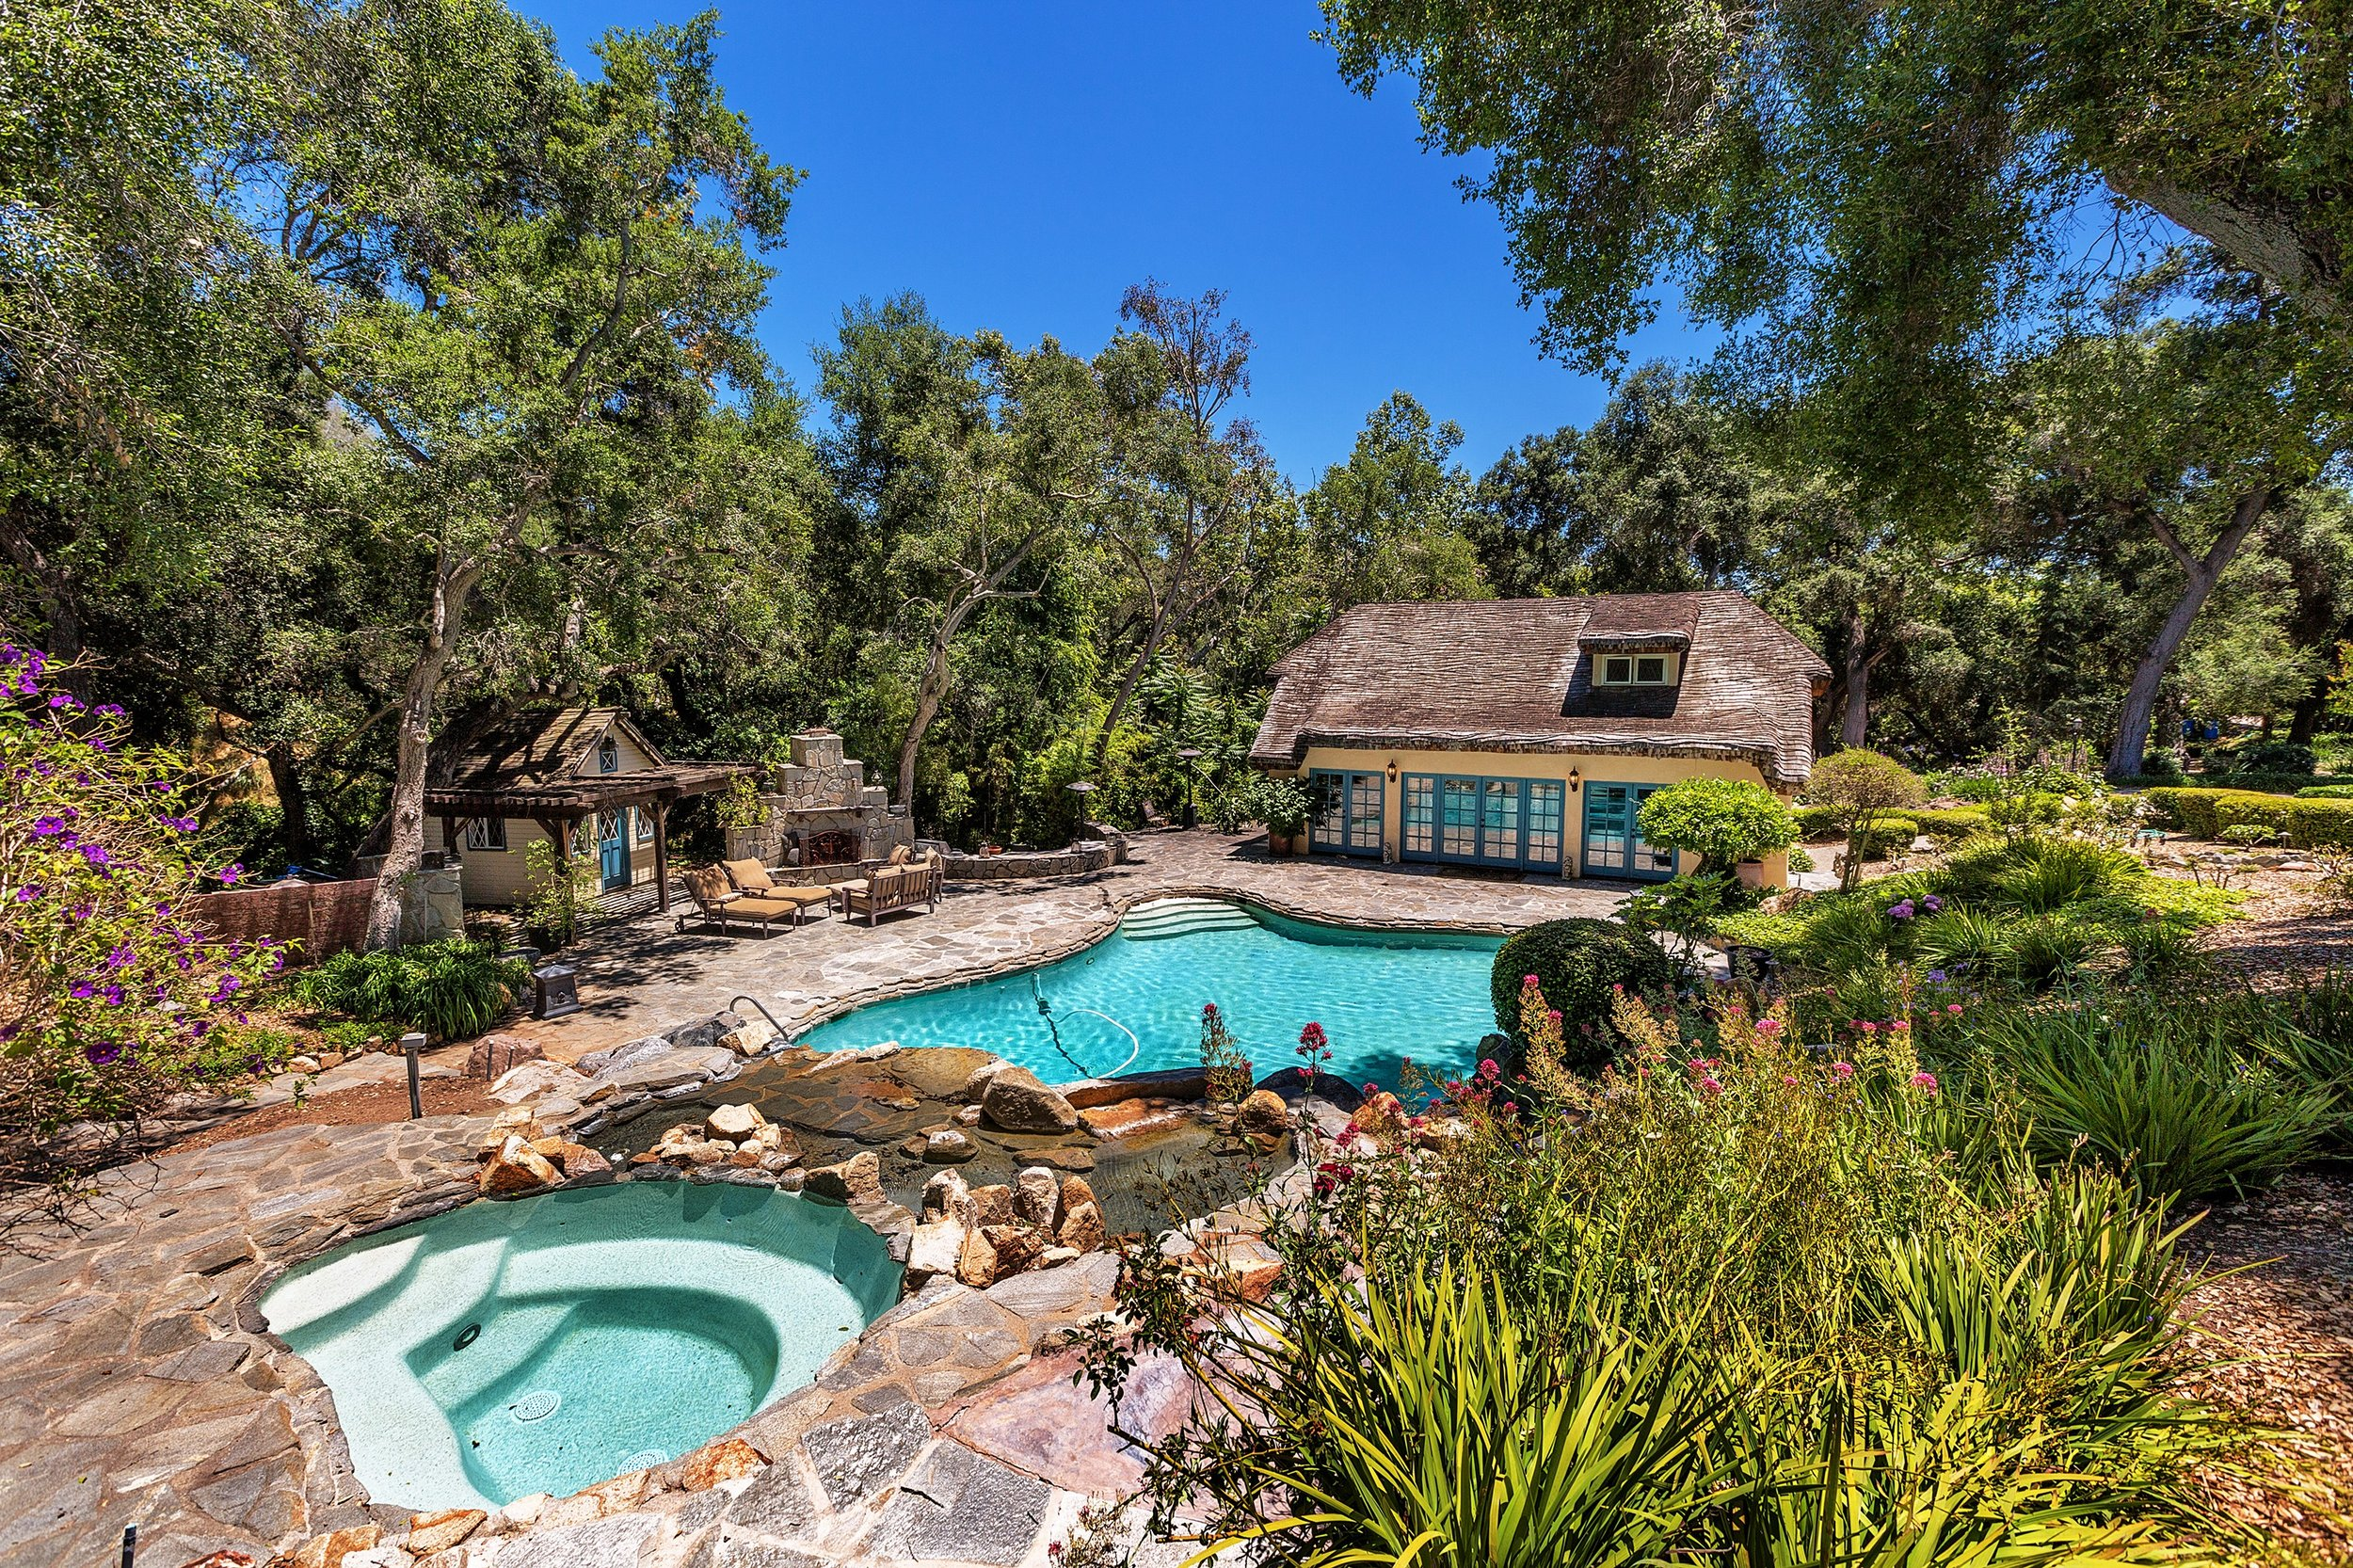 074_Jacuzzi and Pool View.jpg